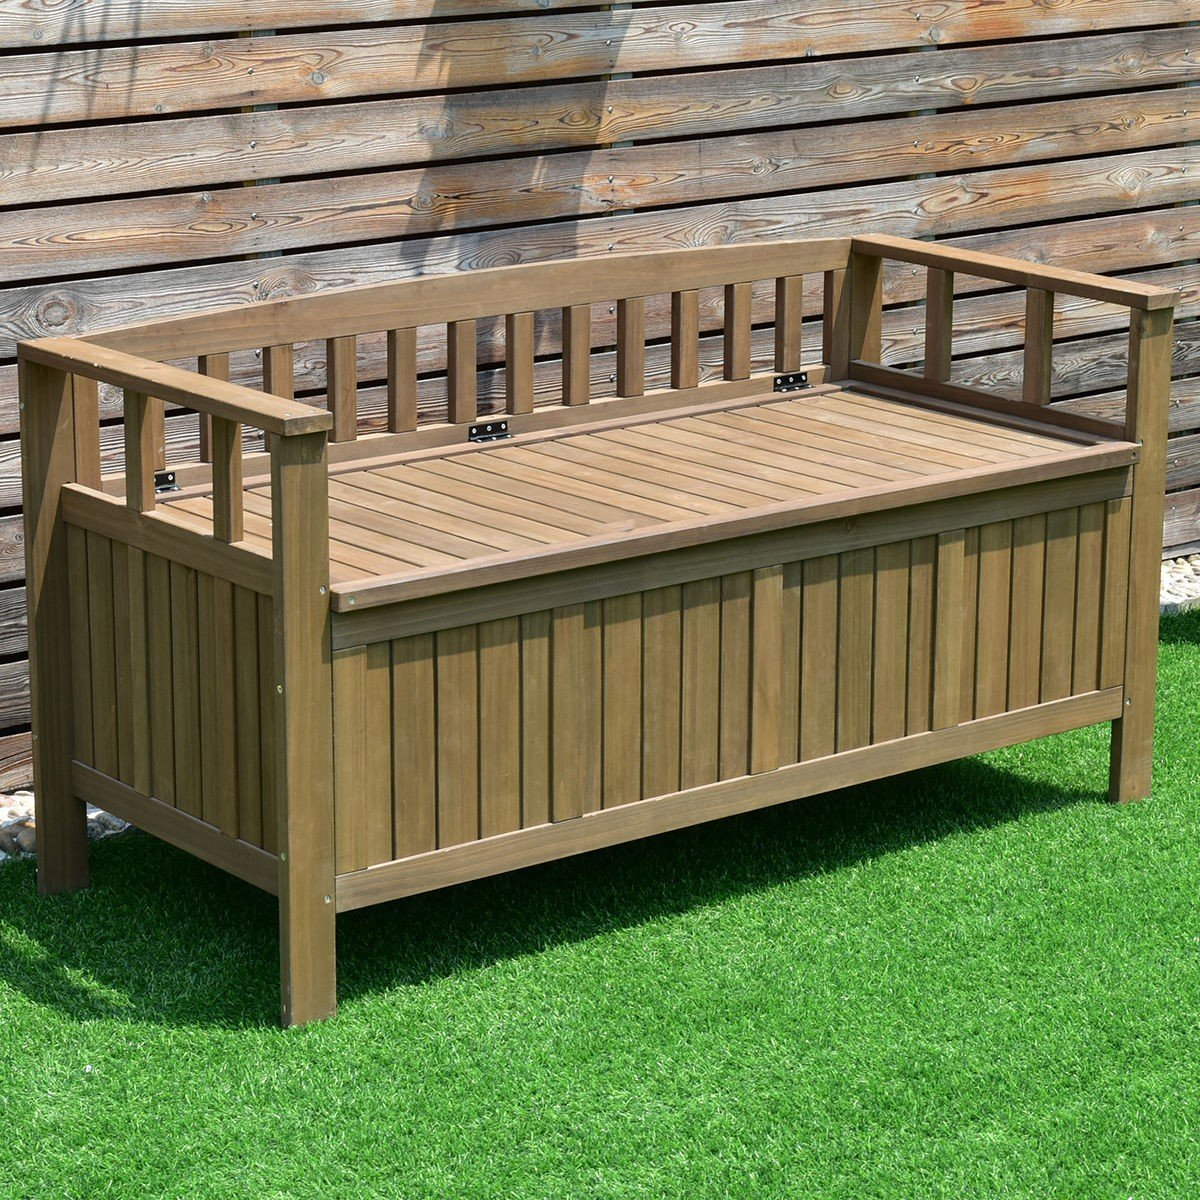 70 Gallon 2-in-1 Outdoor Garden Bench Storage Deck Box - By Choice Products